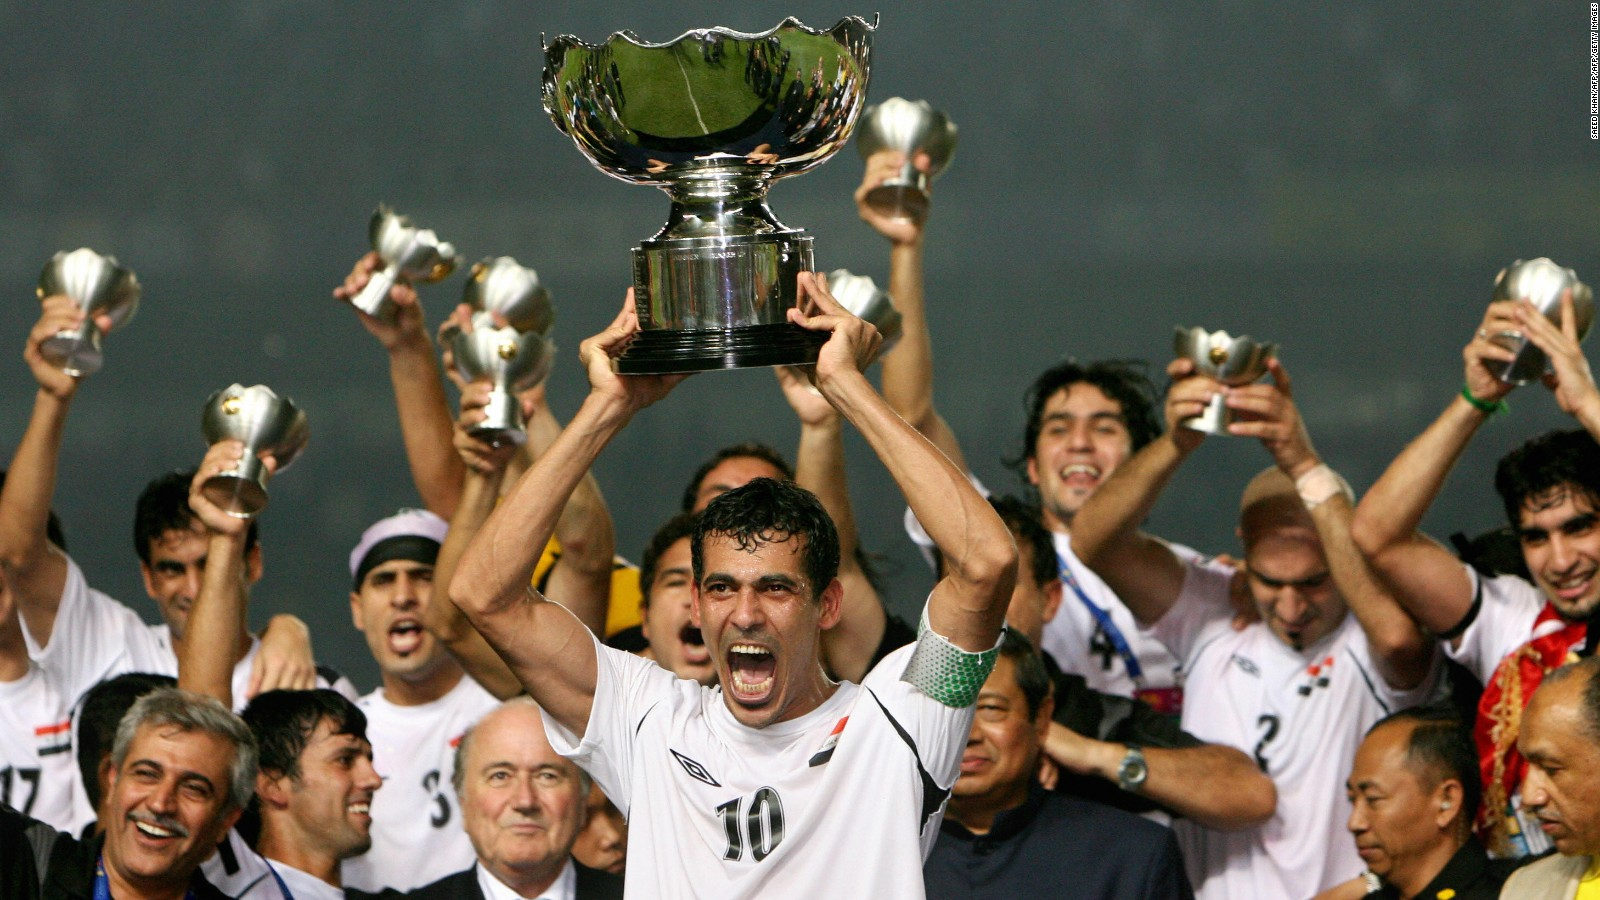 Ten years on: How Iraq's soccer stars brought warring nation together